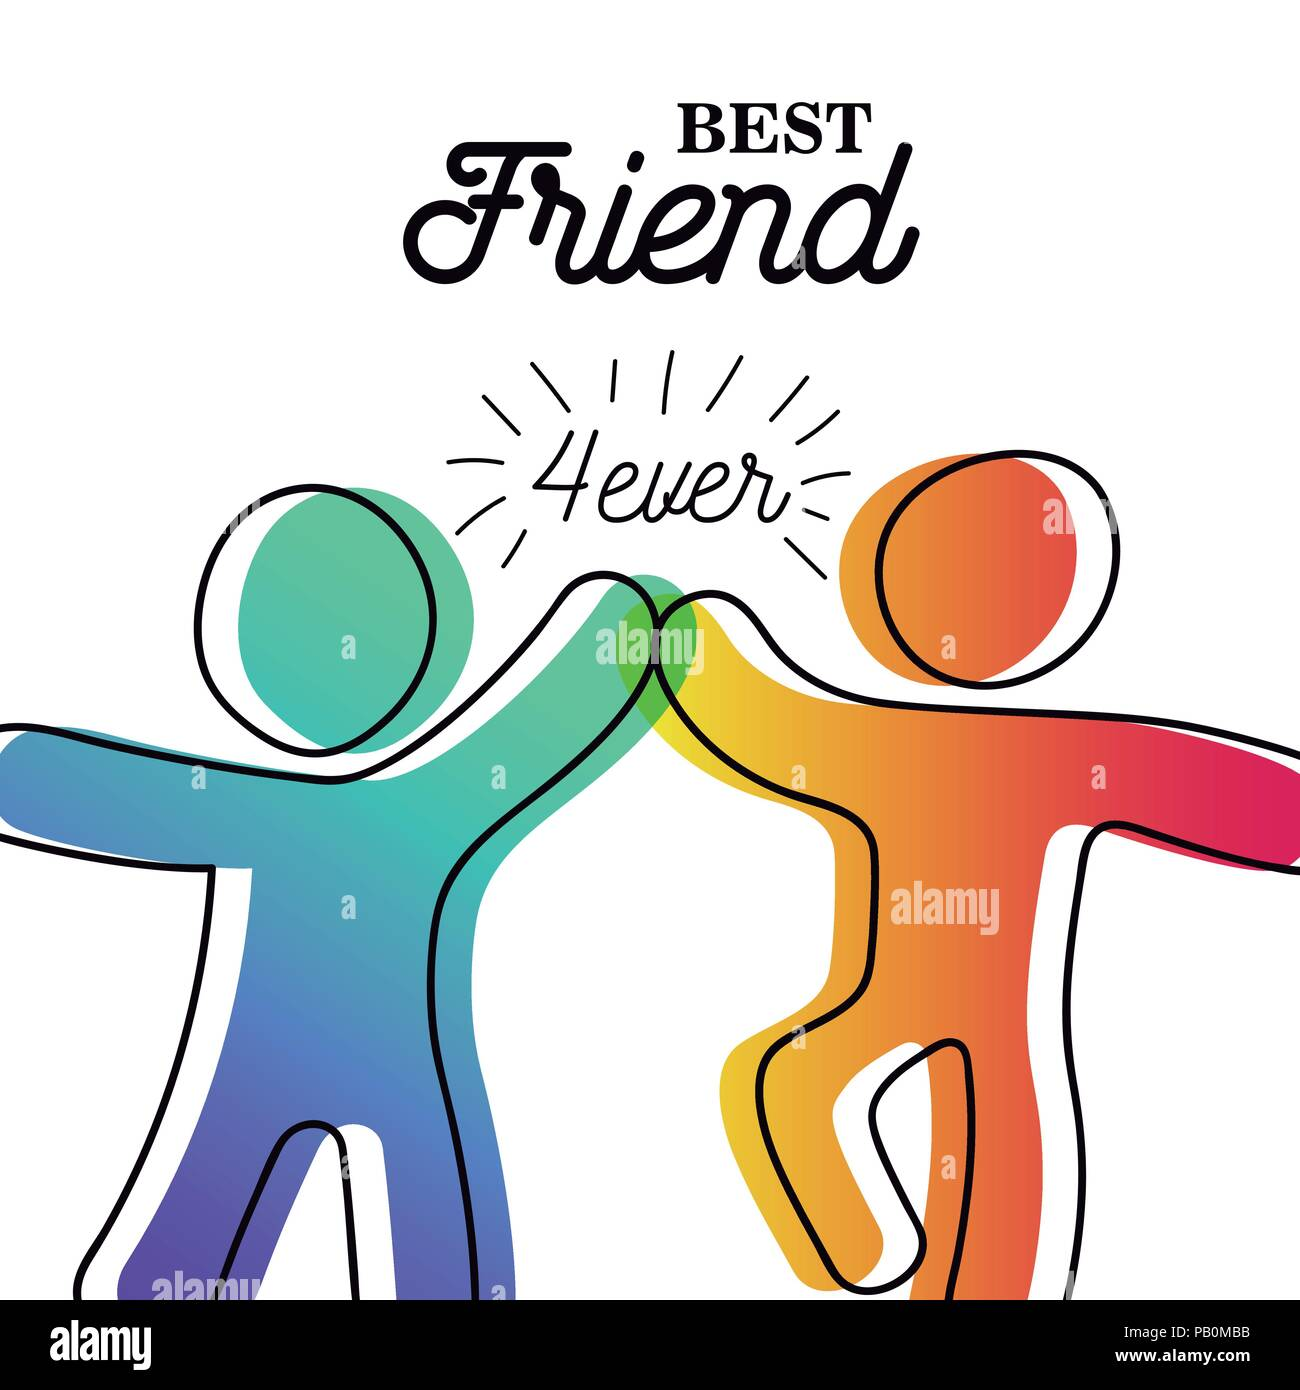 Happy friendship day greeting card friends doing high five for happy friendship day greeting card friends doing high five for special event celebration in simple stick figure art style with best friend forever qu m4hsunfo